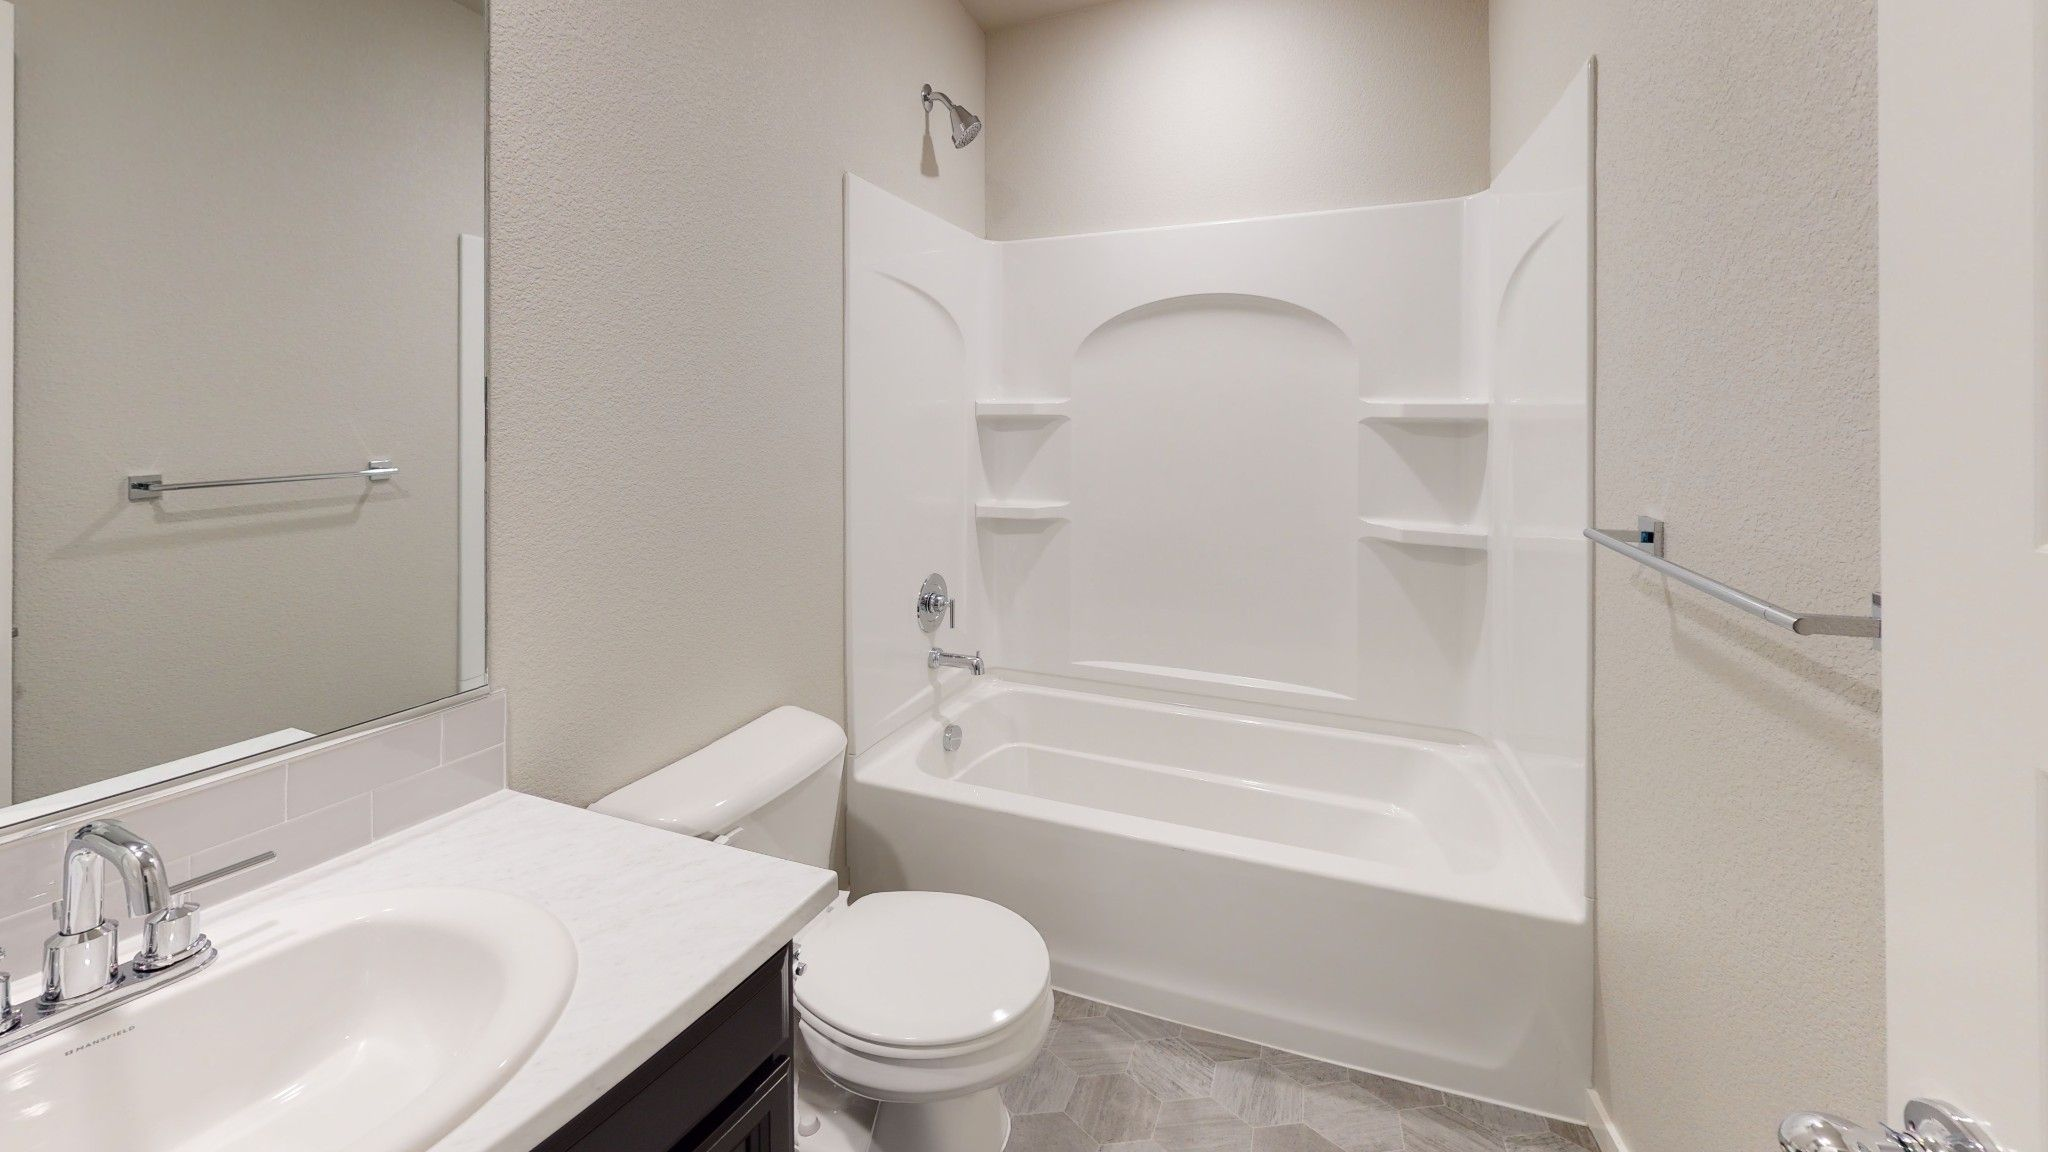 Bathroom featured in the Del Norte By Baessler Homes in Greeley, CO